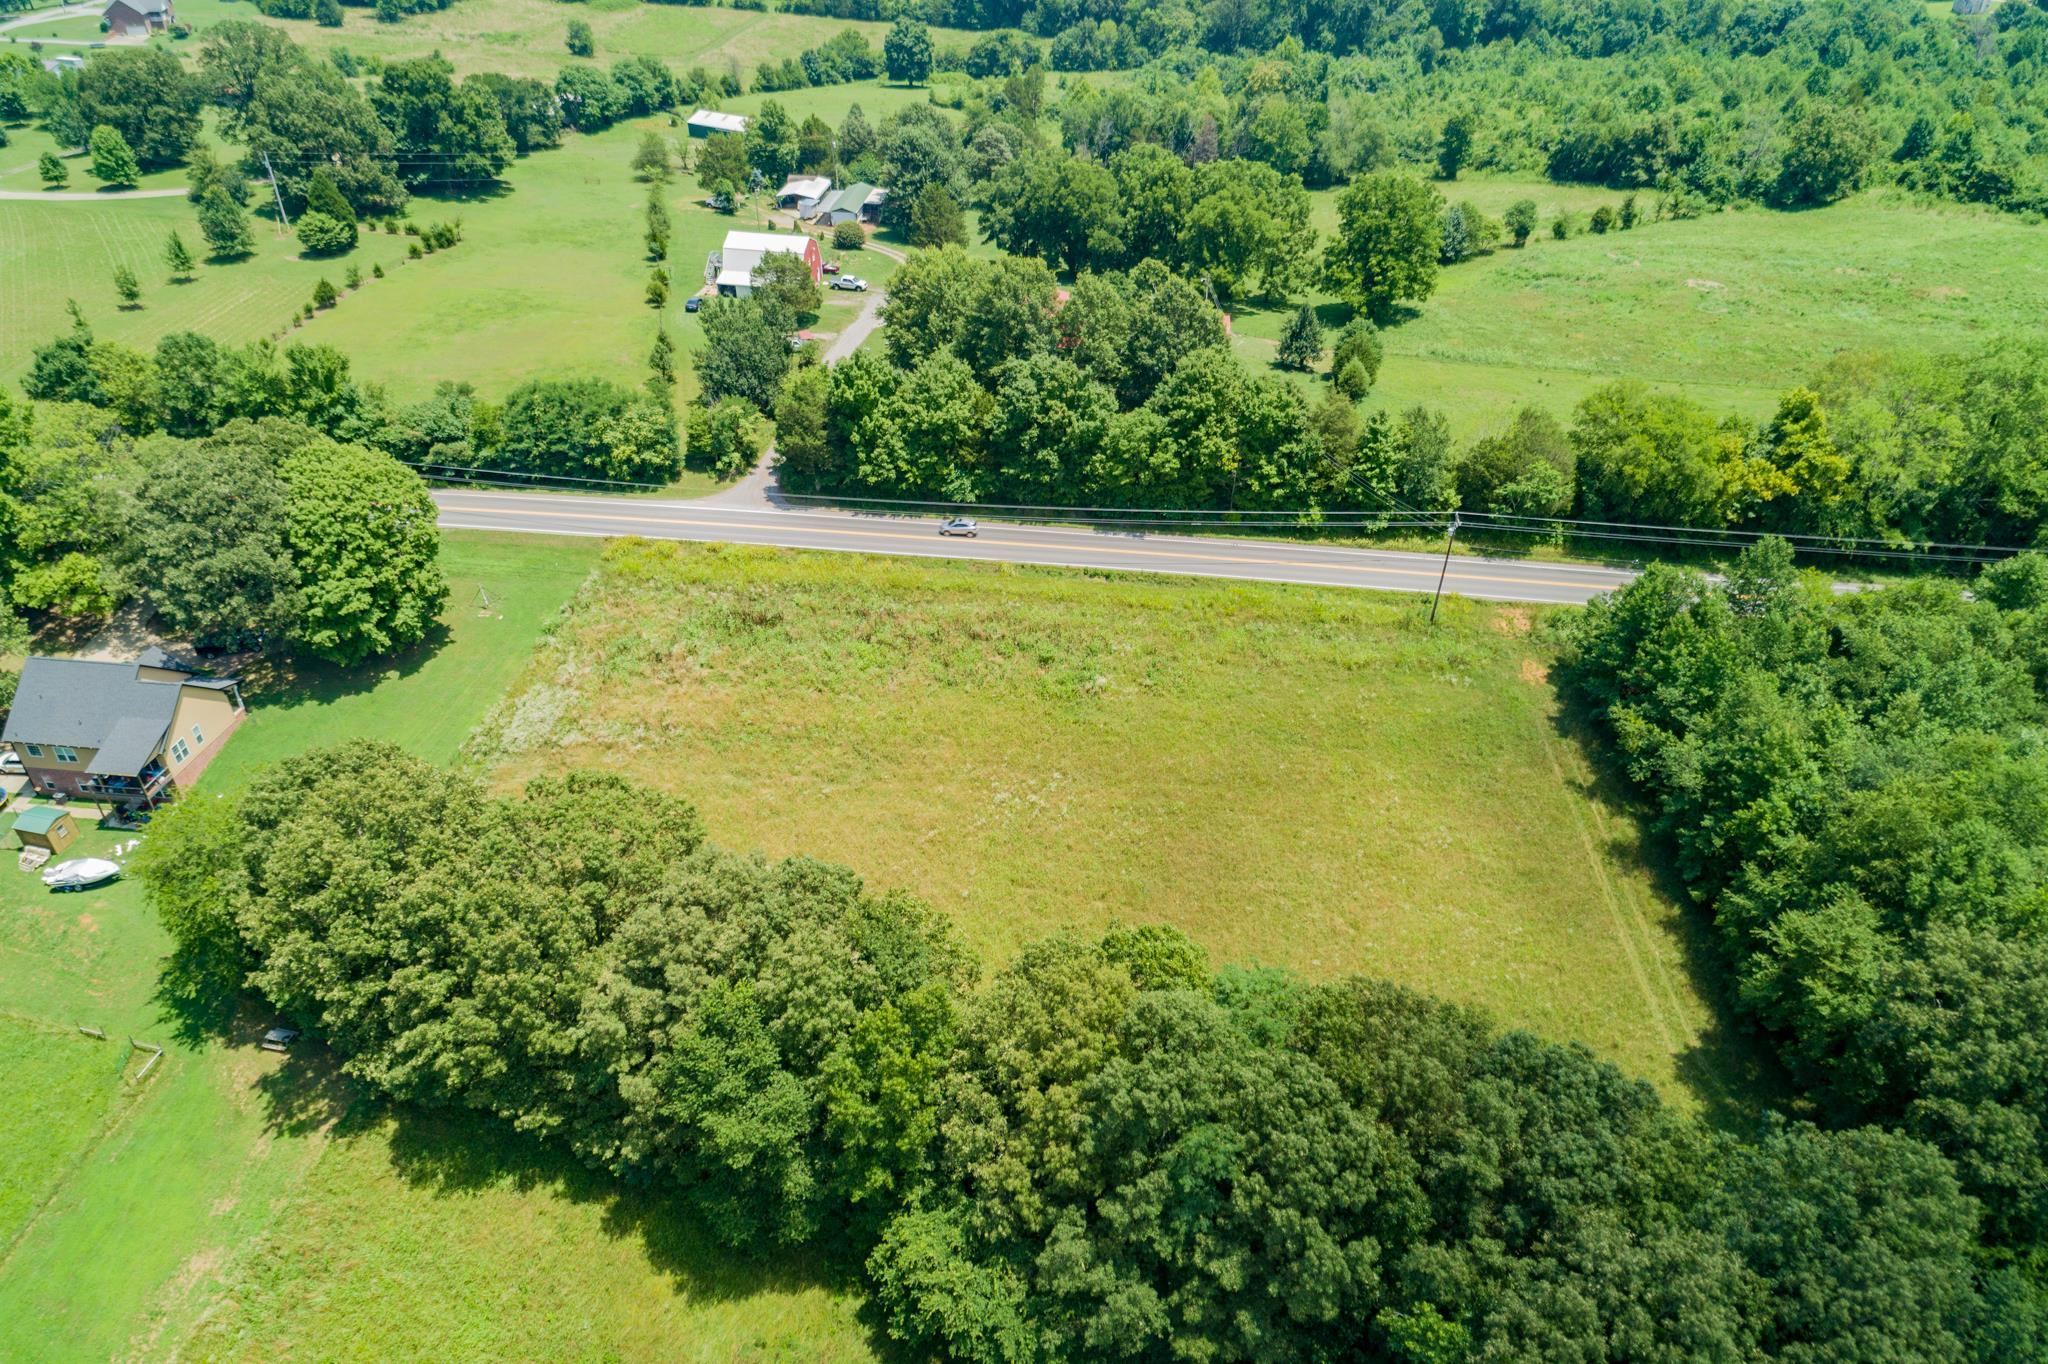 3460 Highway 48 - Lot 2, Cunningham, TN 37052 - Cunningham, TN real estate listing